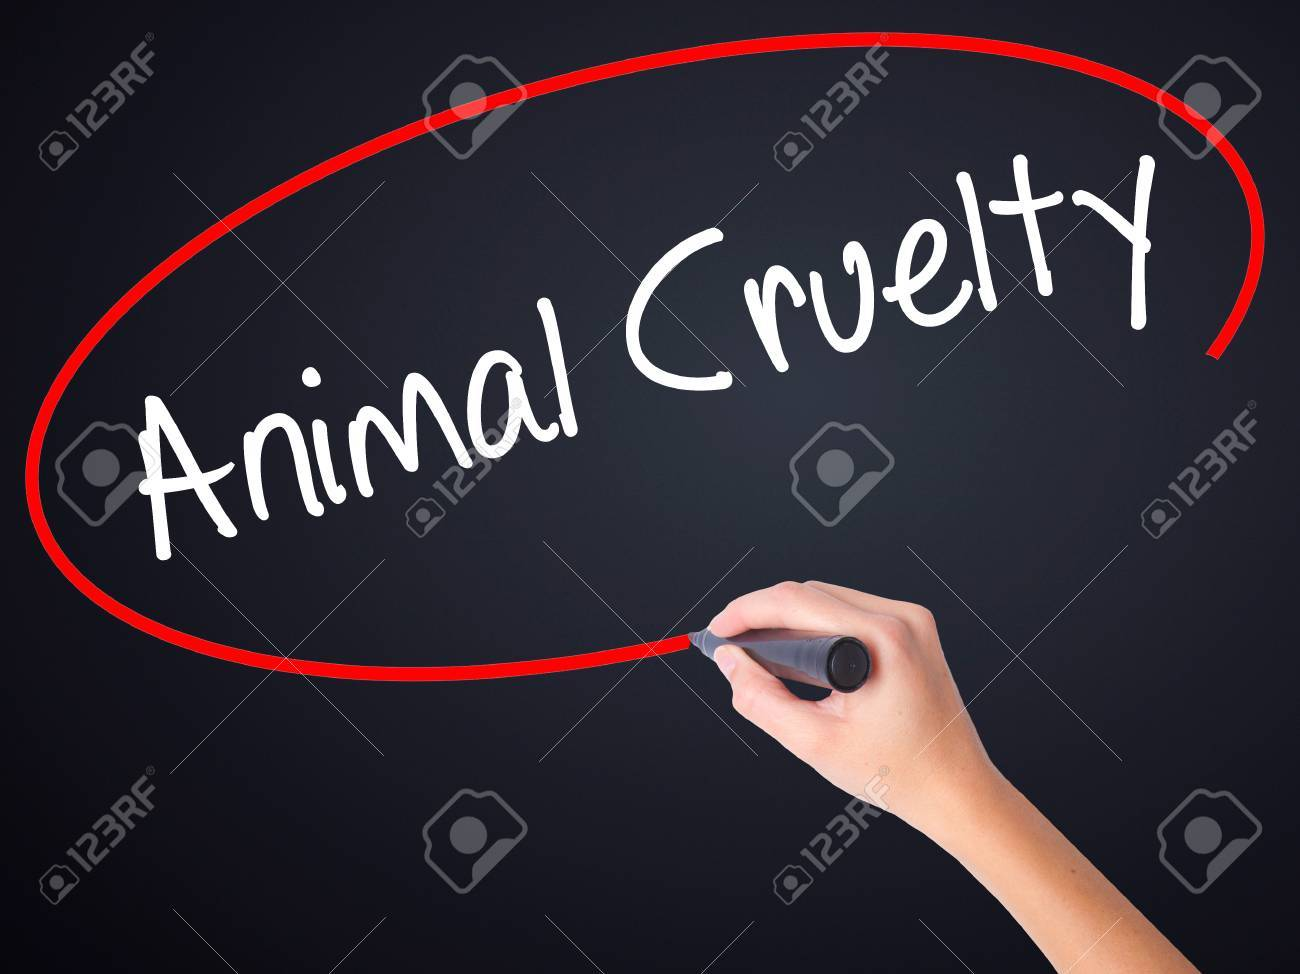 Spm English Essay Stock Photo  Woman Hand Writing Animal Cruelty On Blank Transparent Board  With A Marker Isolated Over Black Background Stock Photo Cause And Effect Essay Papers also Learning English Essay Writing Woman Hand Writing Animal Cruelty On Blank Transparent Board Stock  High School Admission Essay Sample